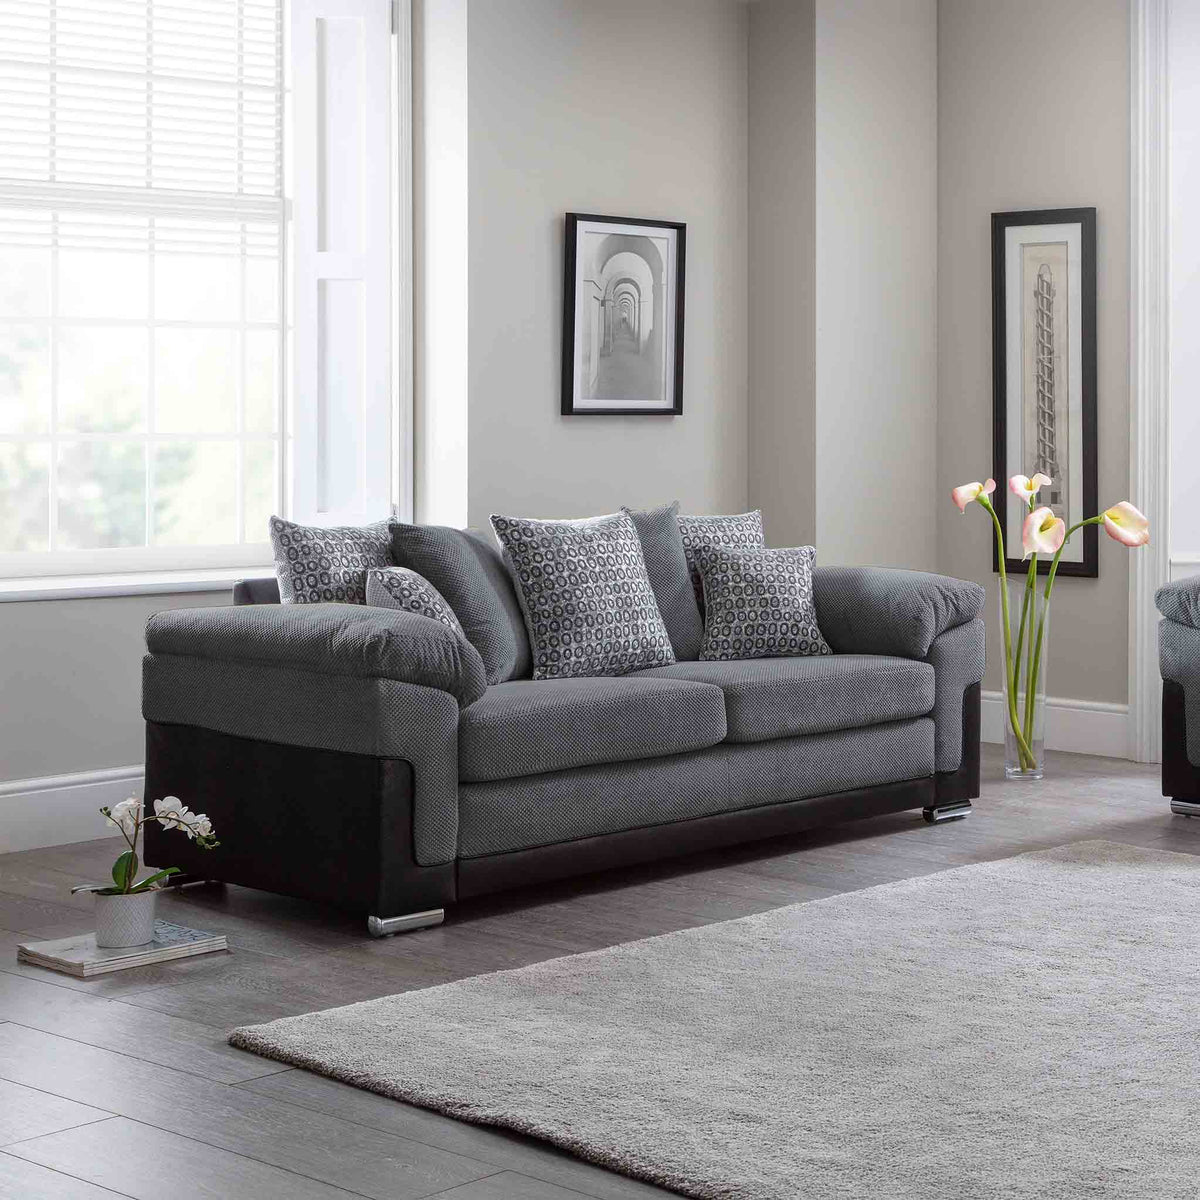 Ameba Charcoal 3 Seater Fabric & Faux Leather Sofa lifestyle image